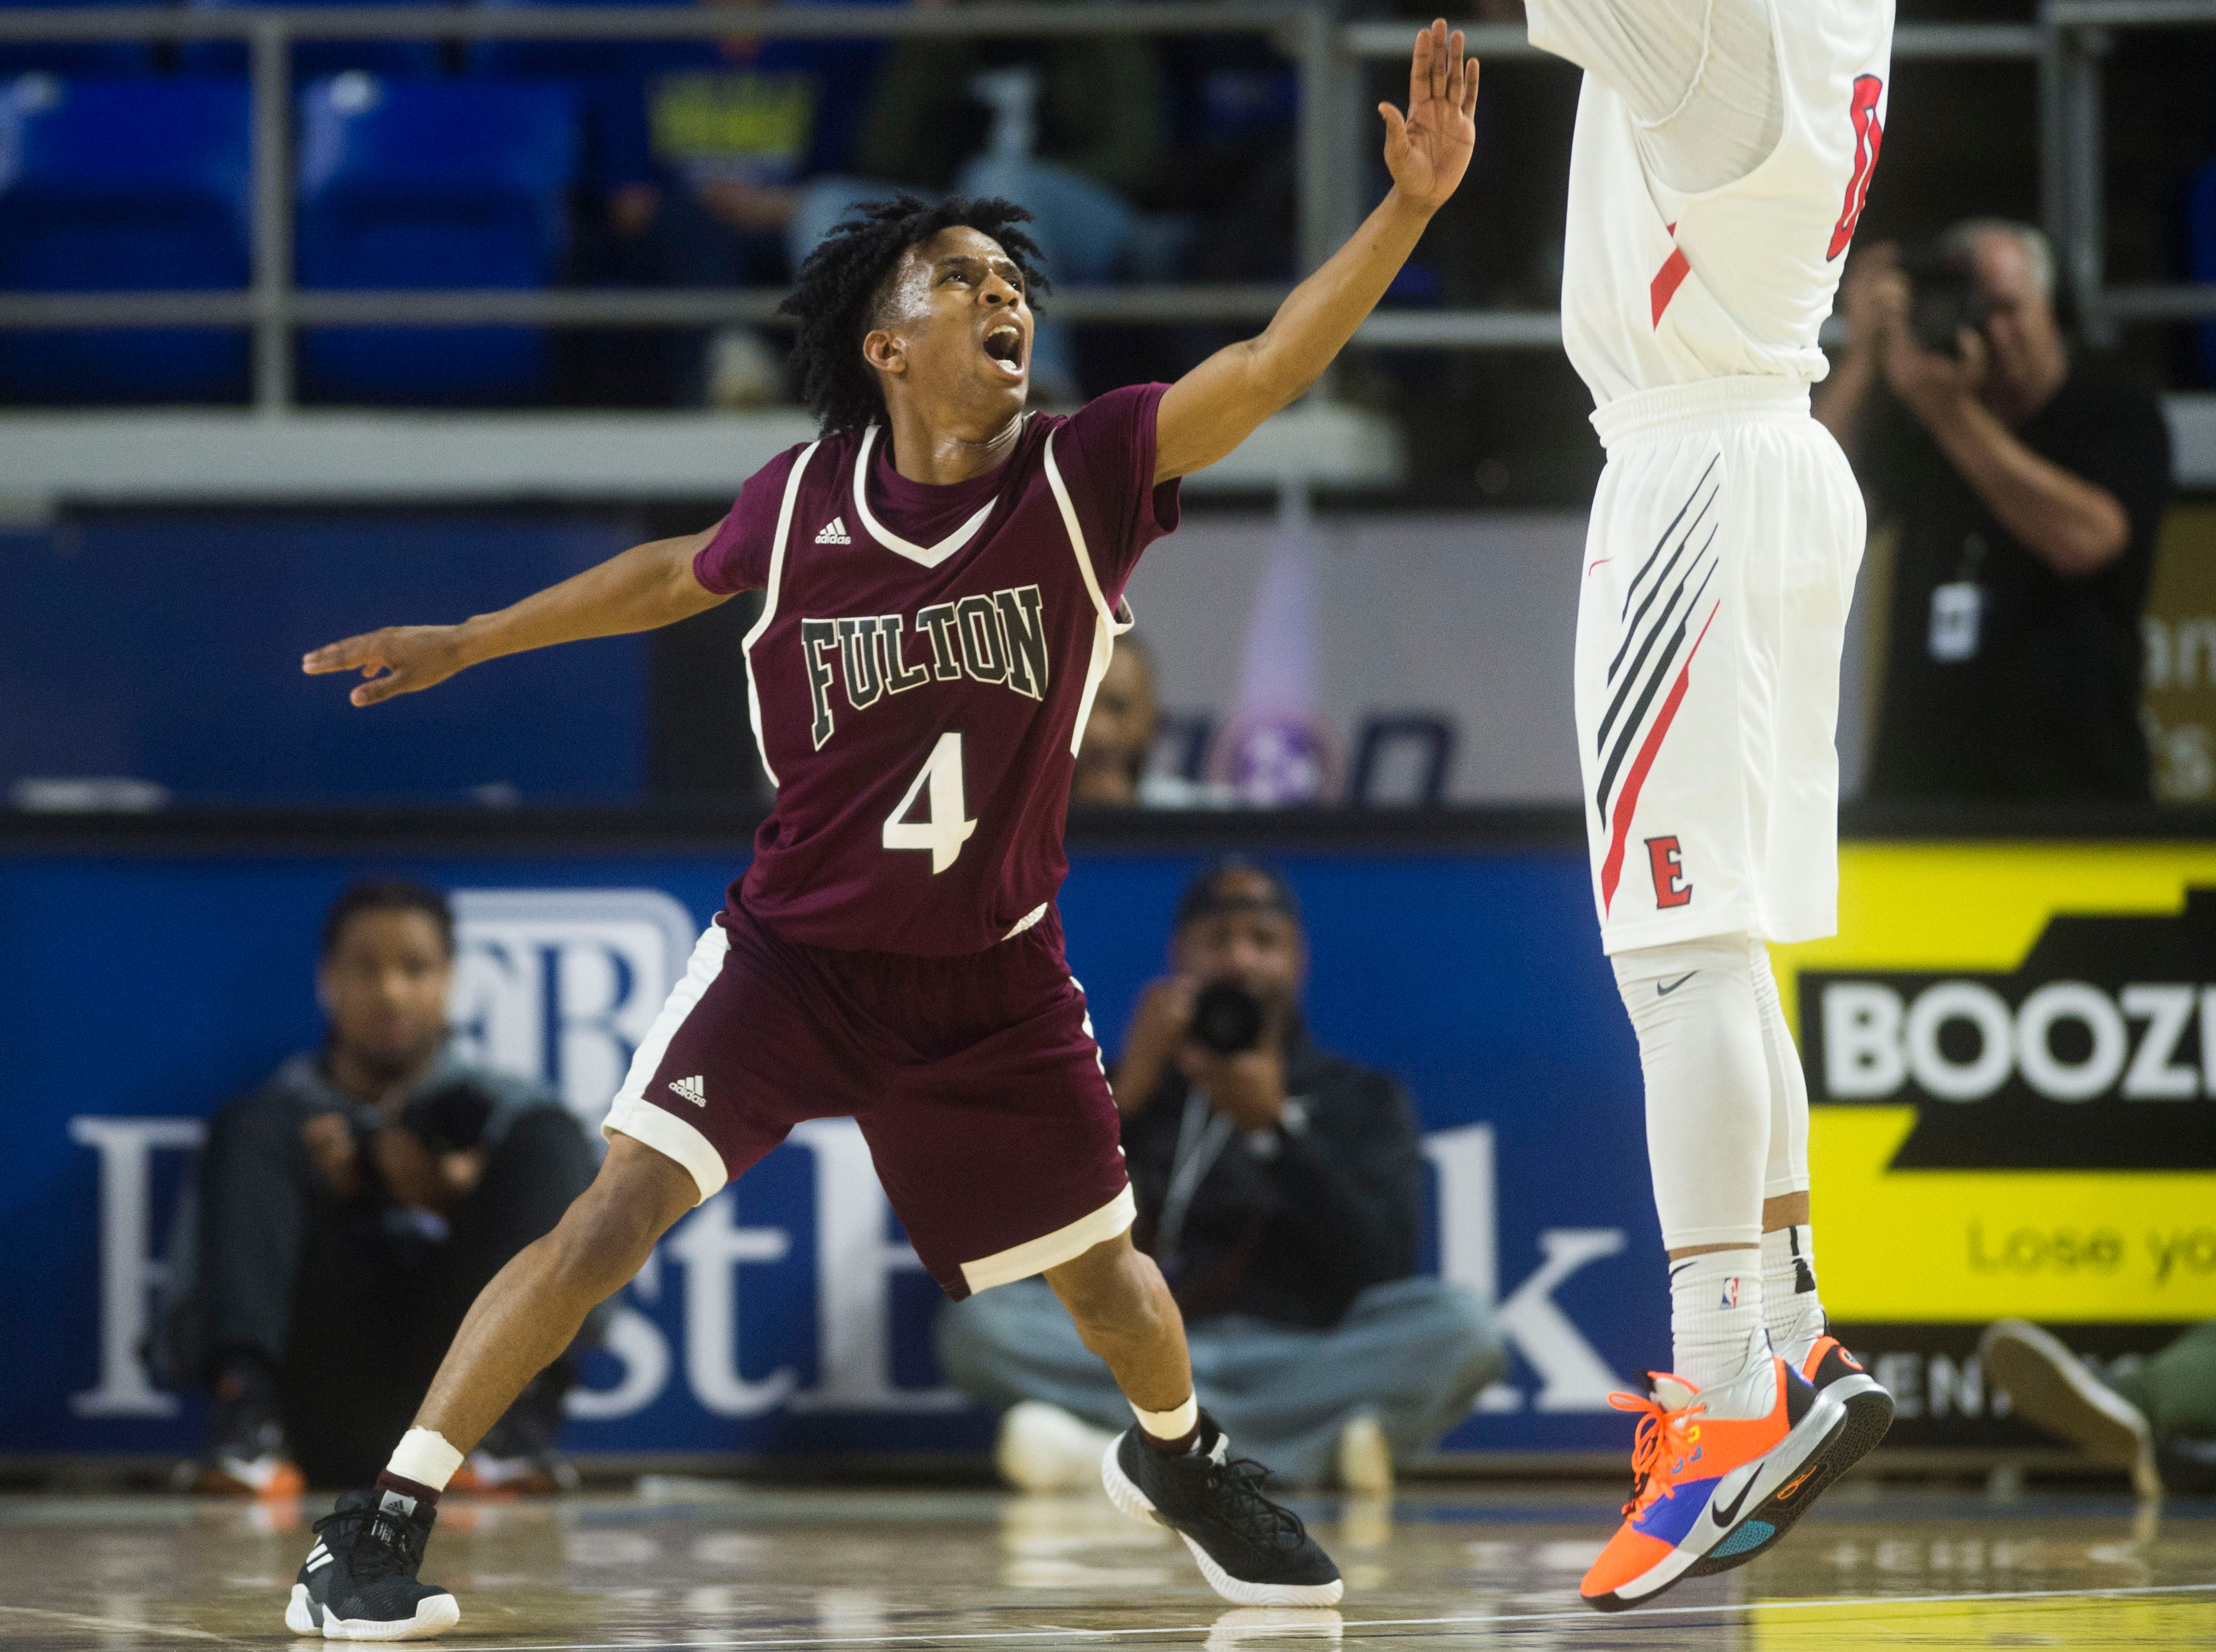 Fulton's Edward Lacy (4) defends East NashvilleÕs Taras Carter (0) during a TSSAA AA state semifinal game between East Nashville and Fulton at the Murphy Center in Murfreesboro, Friday, March 15, 2019. Fulton defeated East Nashville 66-55.